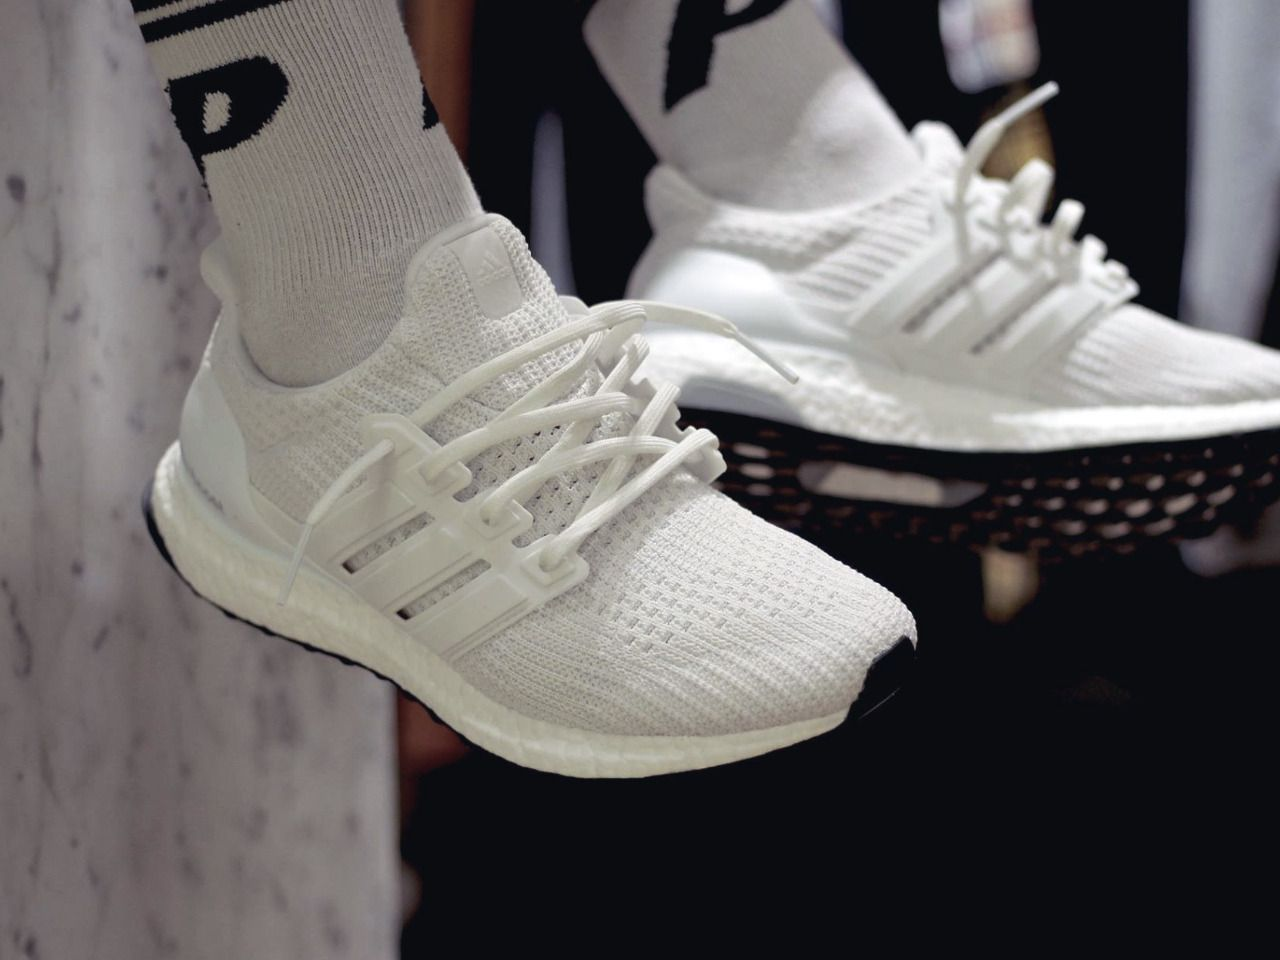 efcdfbbfd337c Adidas Ultra Boost 4.0 - Triple White - 2017 by Cerje Jack-l Buy  viaGlamour